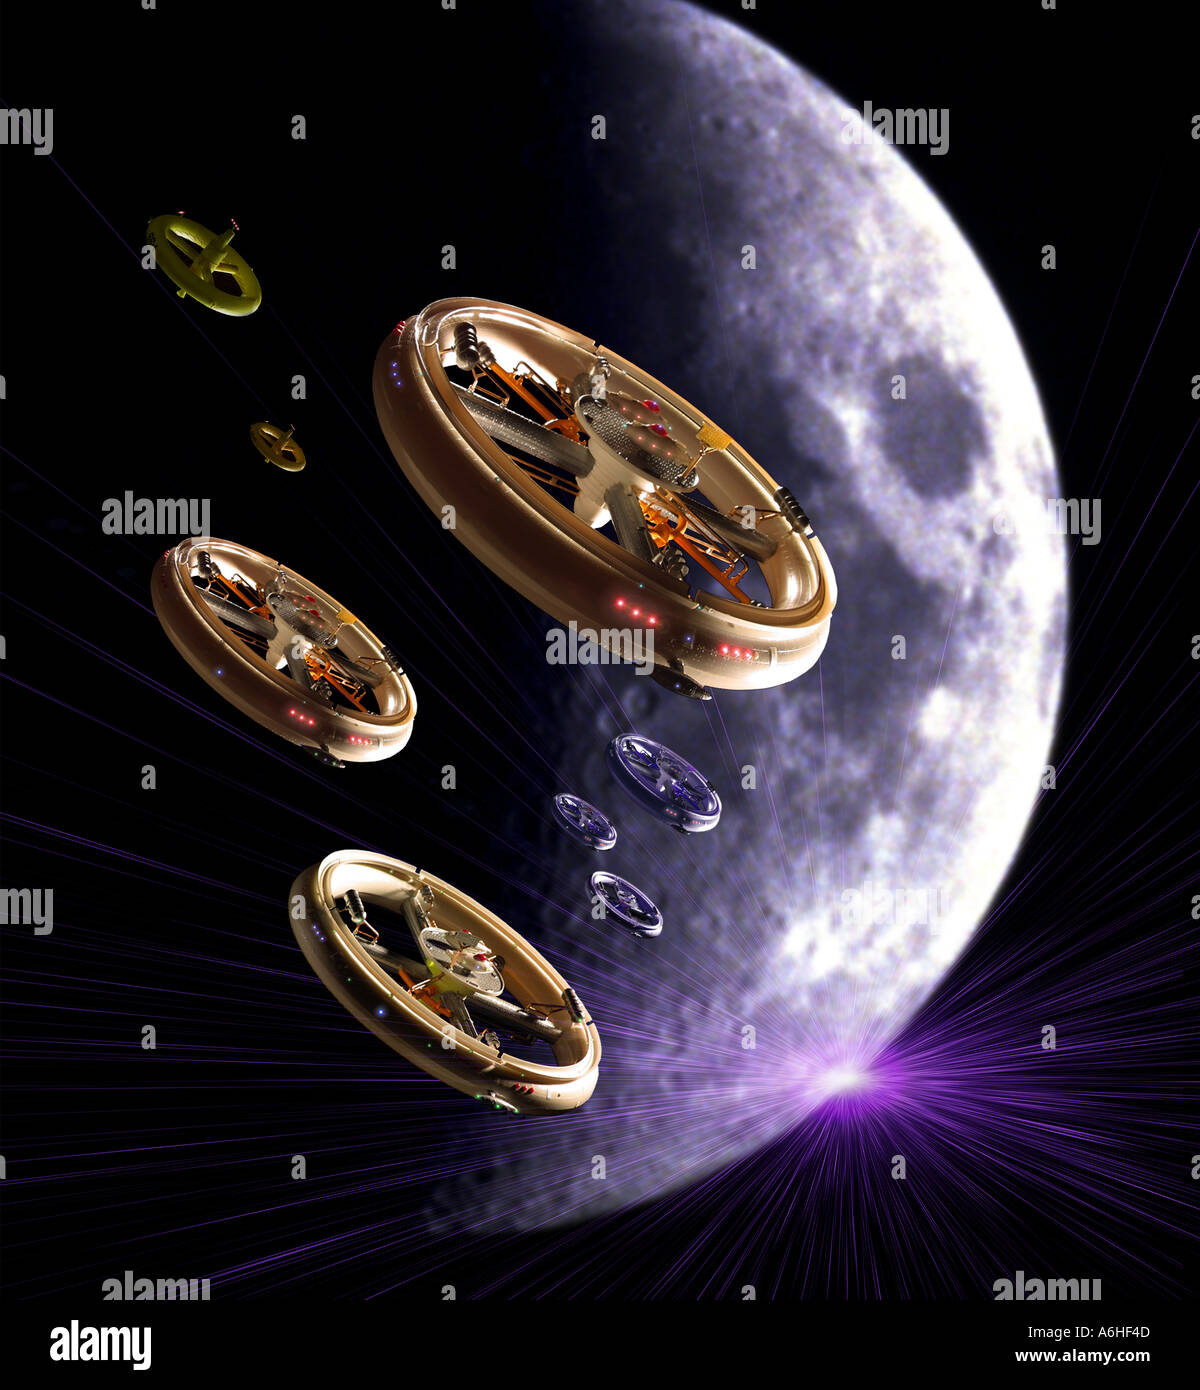 UFOs in Space - Stock Image